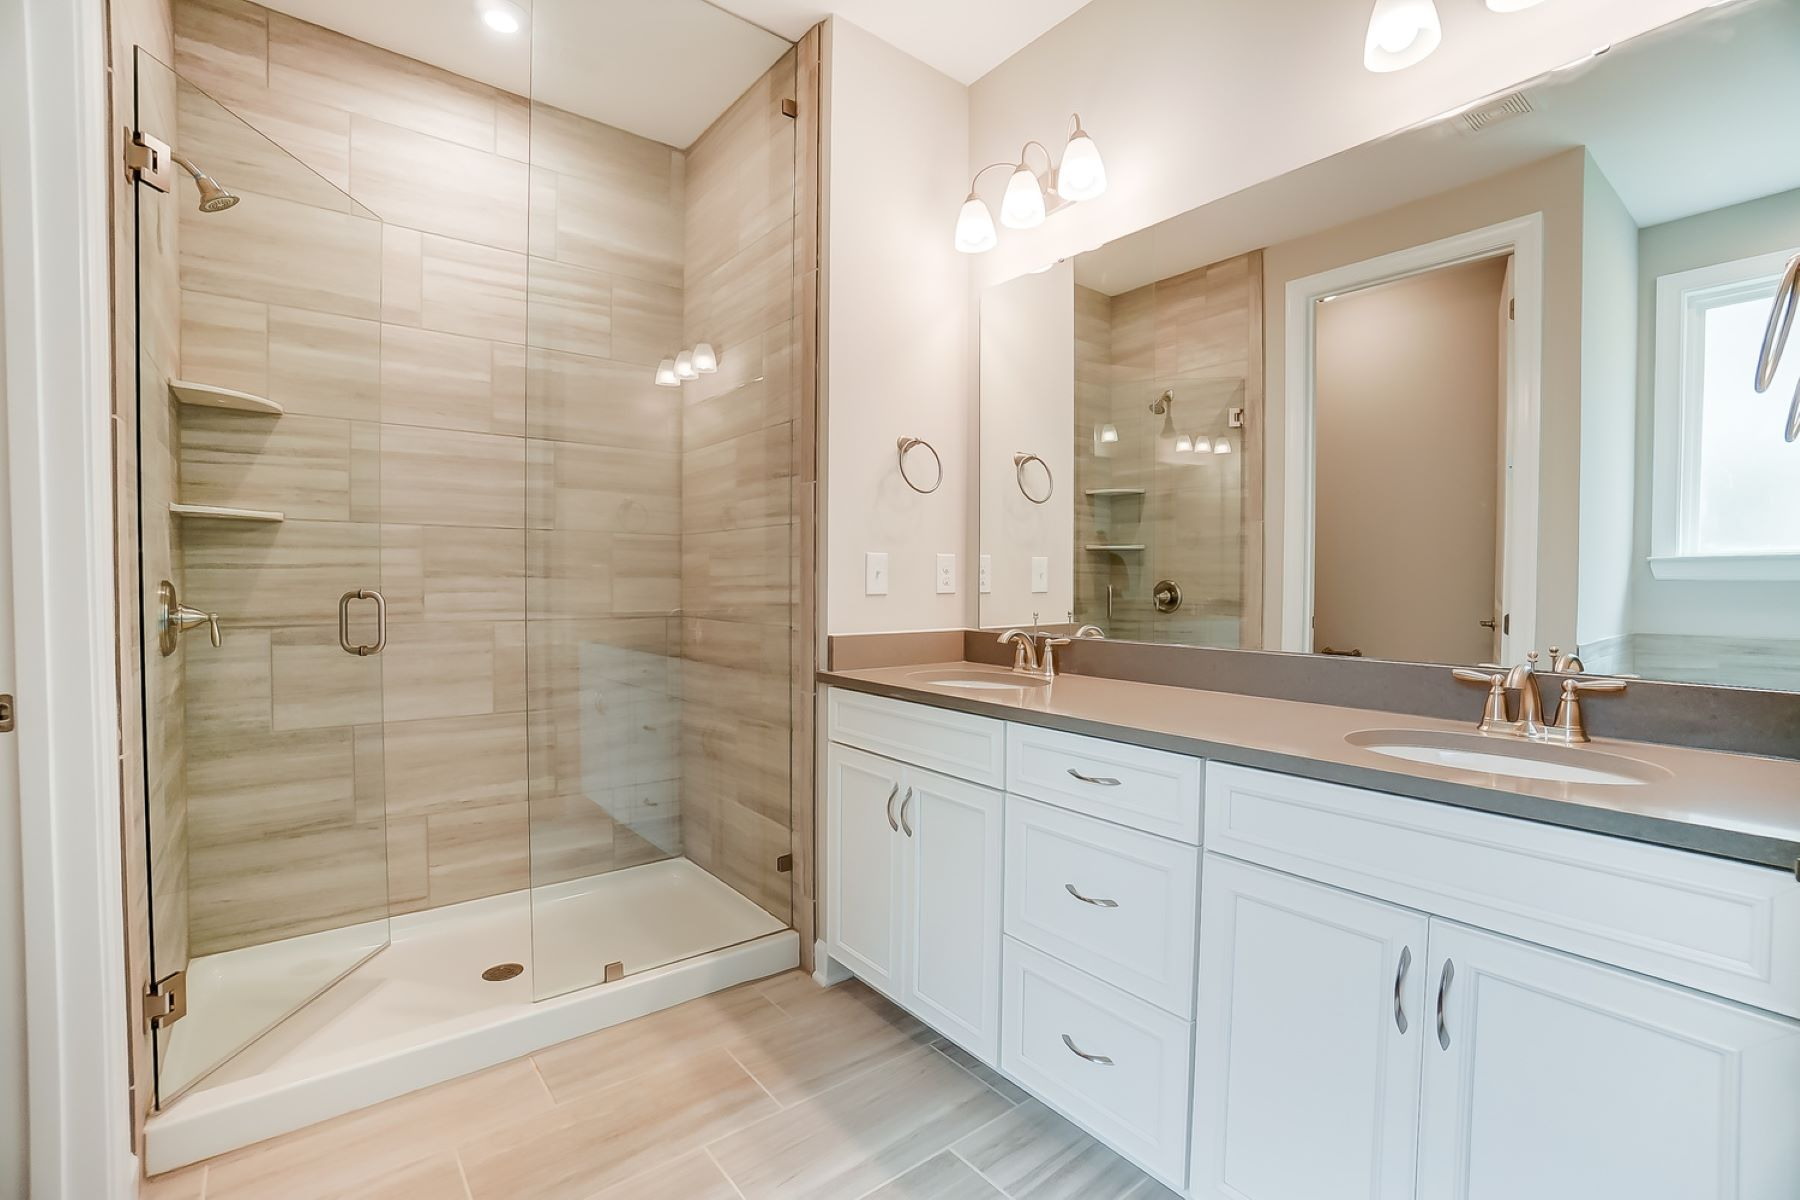 Astaire Plan Bathroom_Master Bath at Sonata at Mint Hill in Mint Hill North Carolina by Mattamy Homes